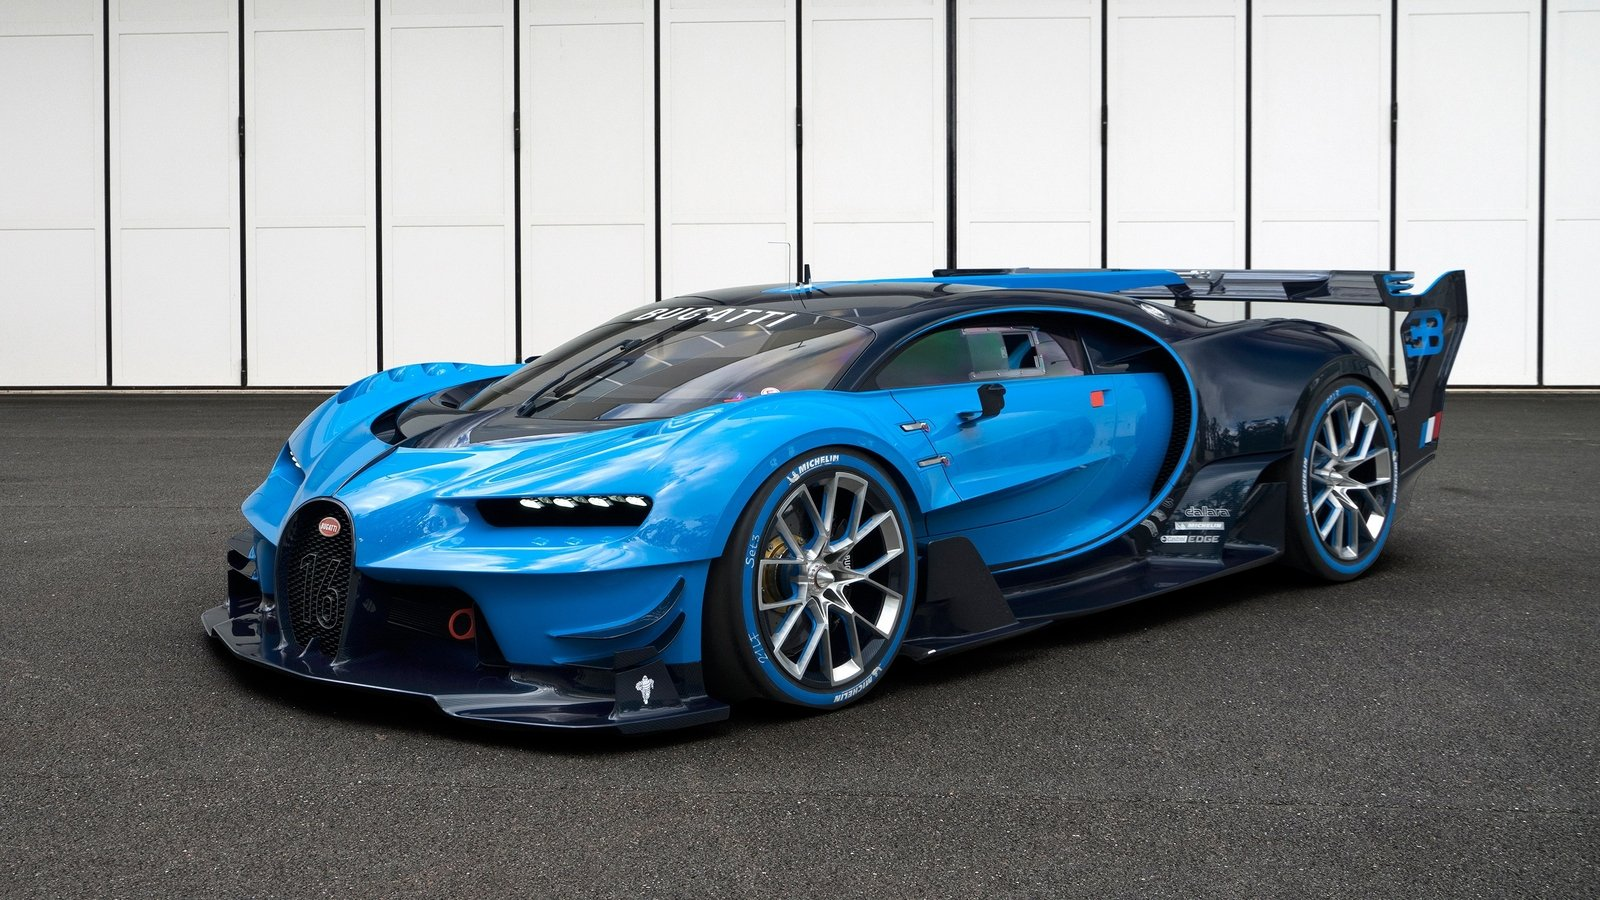 2016 bugatti vision gran turismo picture 645920 car review top speed. Black Bedroom Furniture Sets. Home Design Ideas